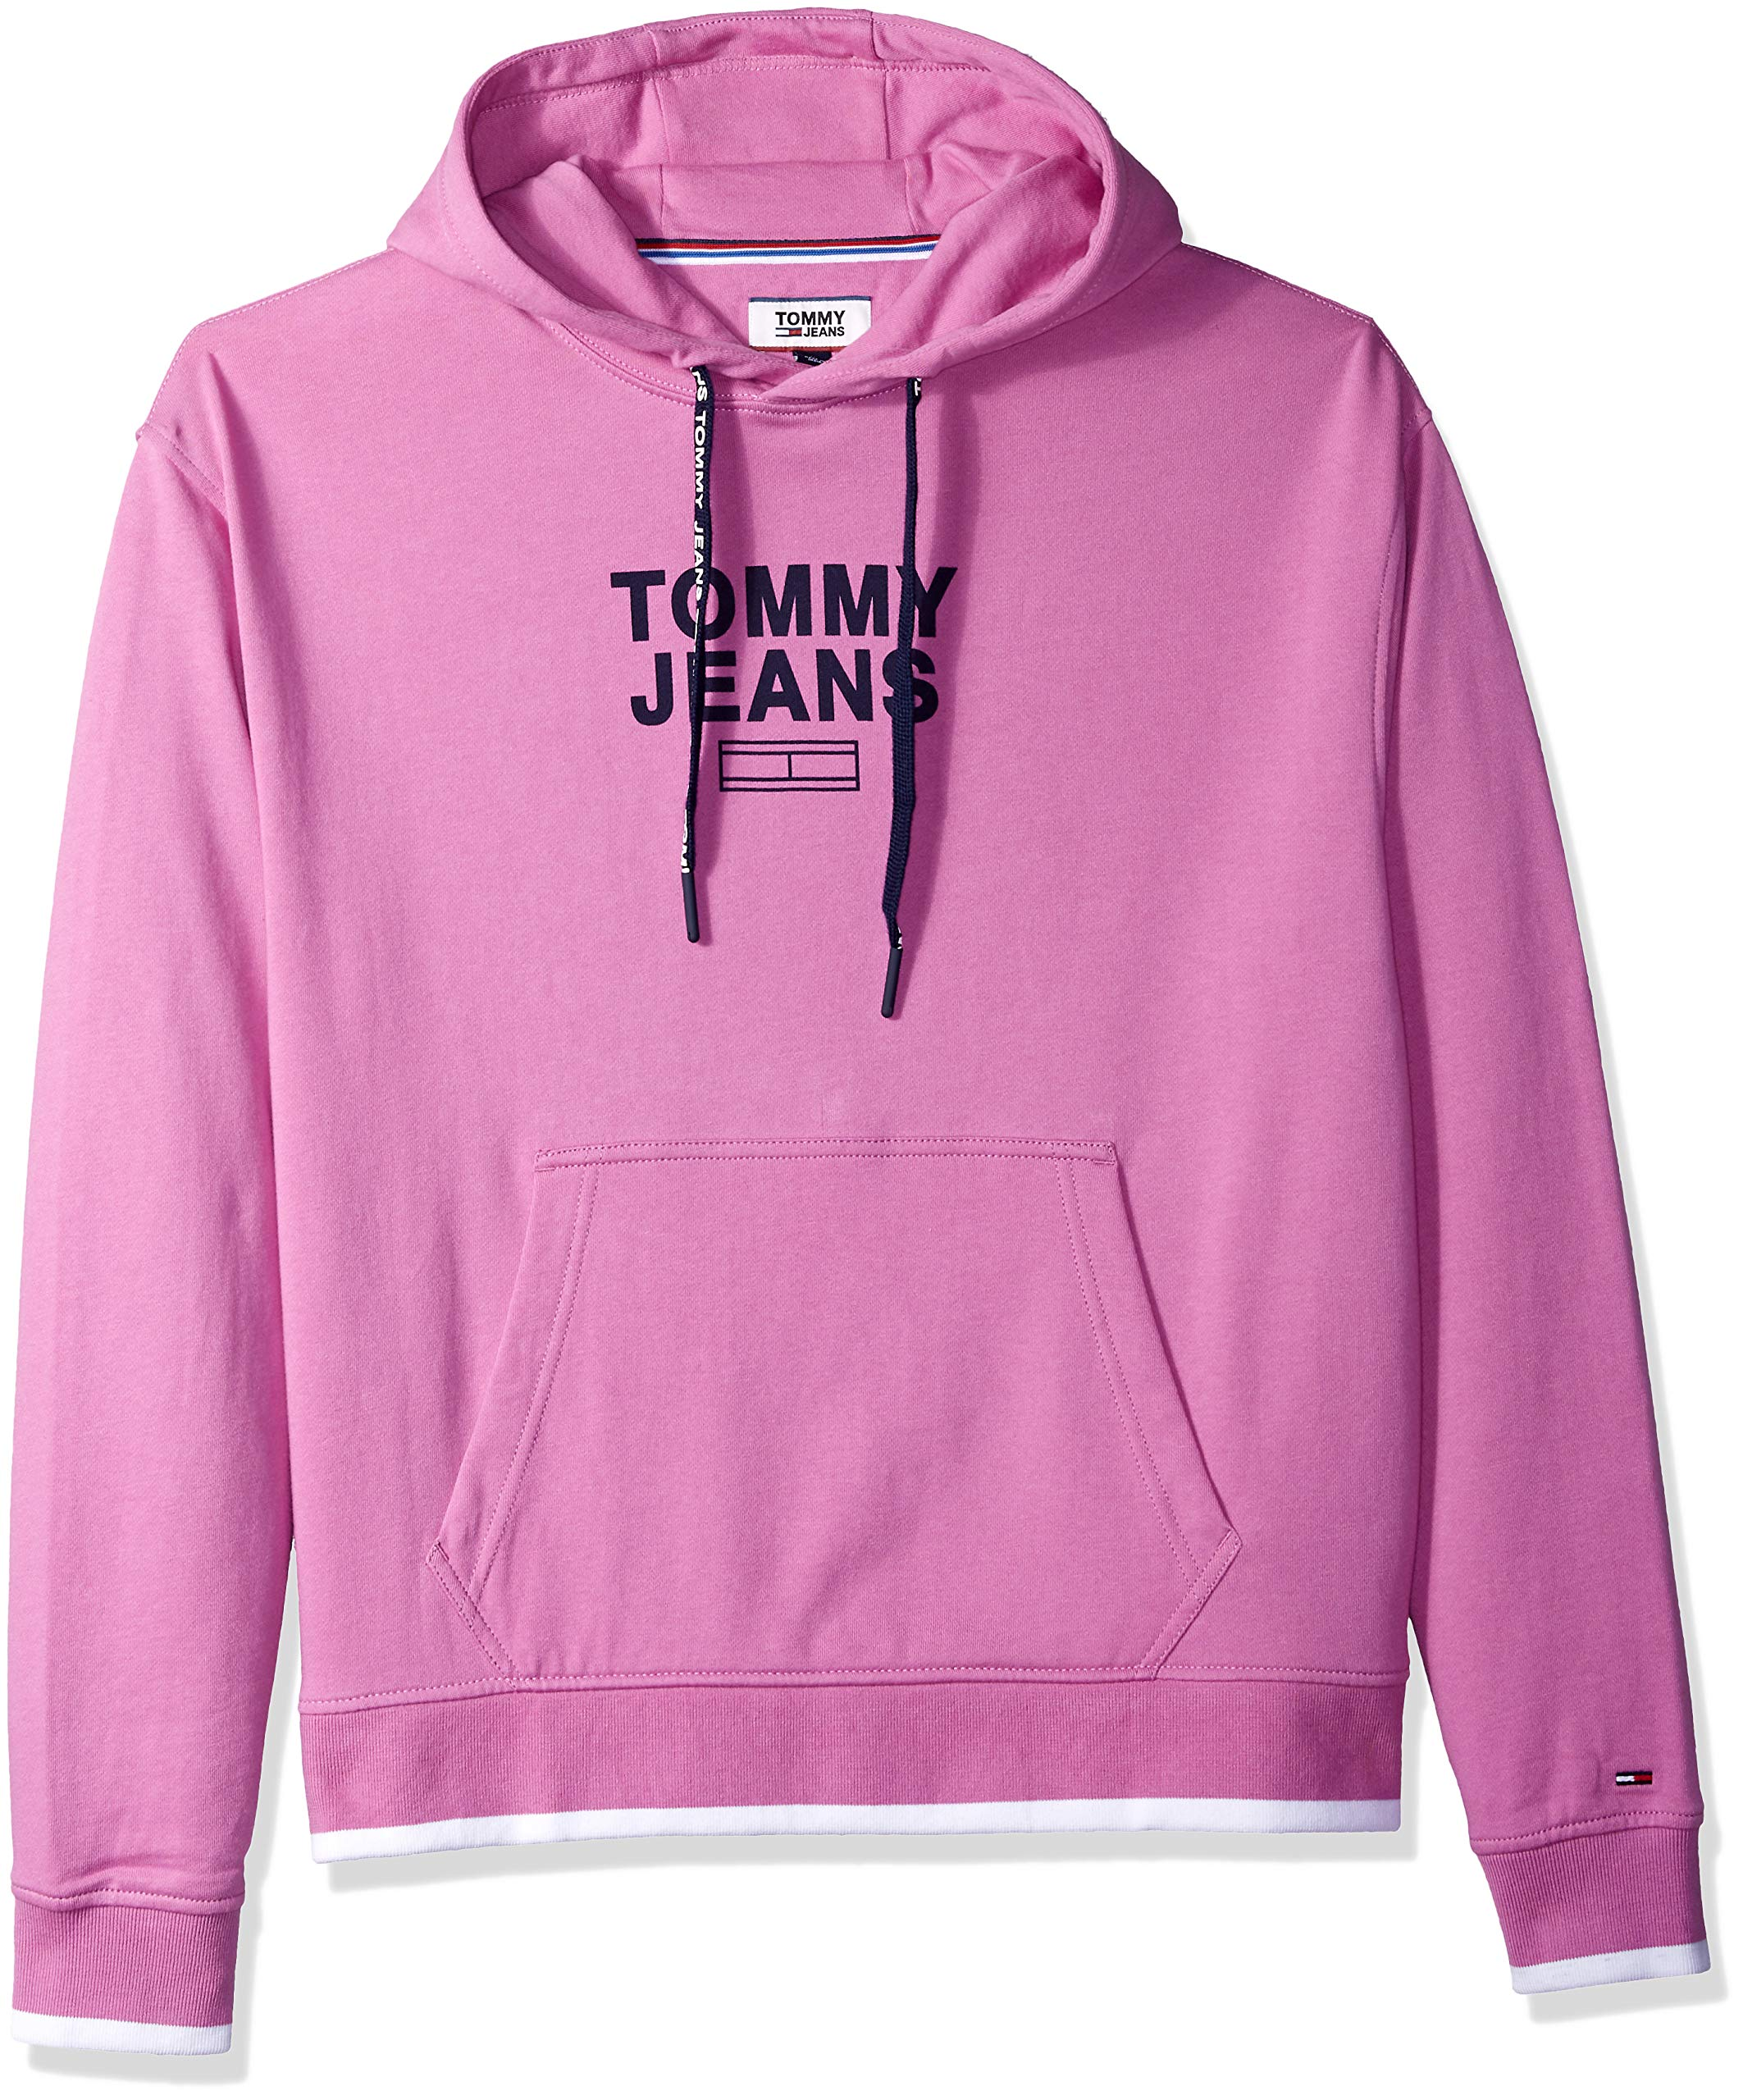 Tommy Jeans Men's Hooded Sweatshirt Relaxed